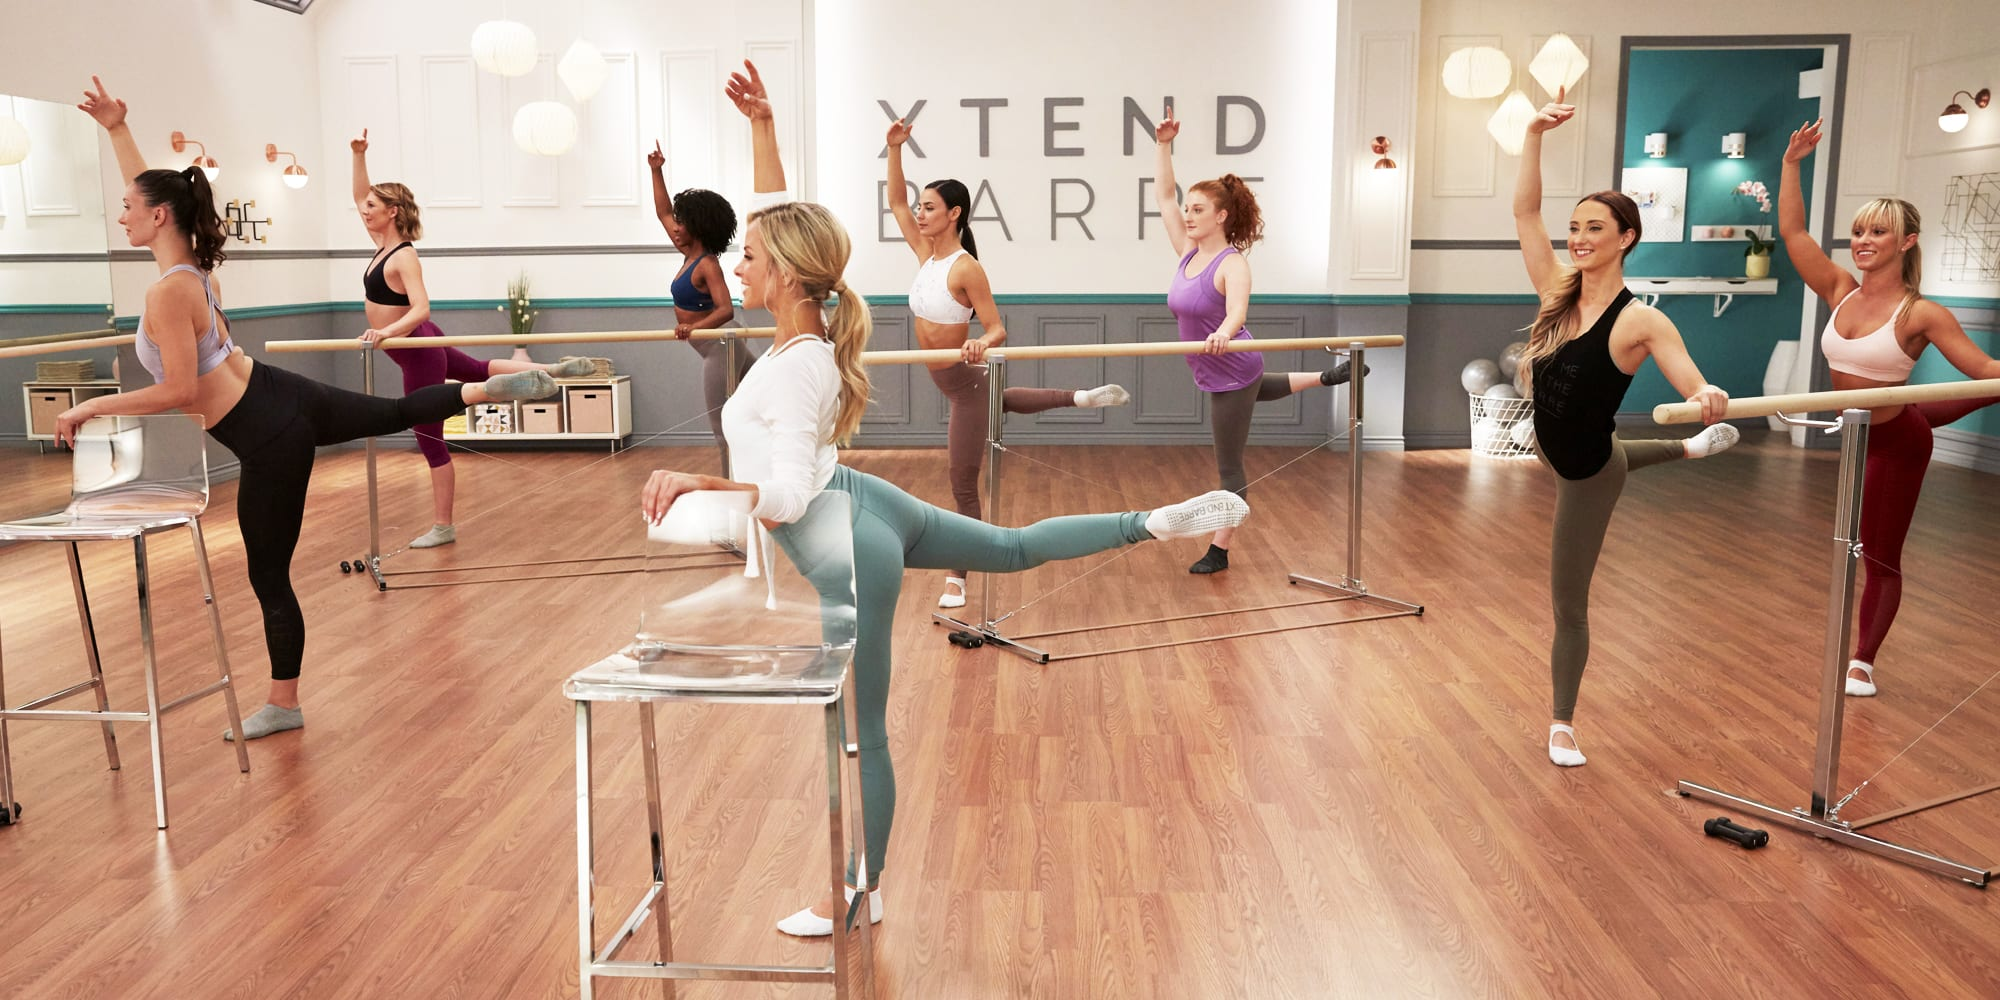 Xtend Barre Openfit Sneak Peek